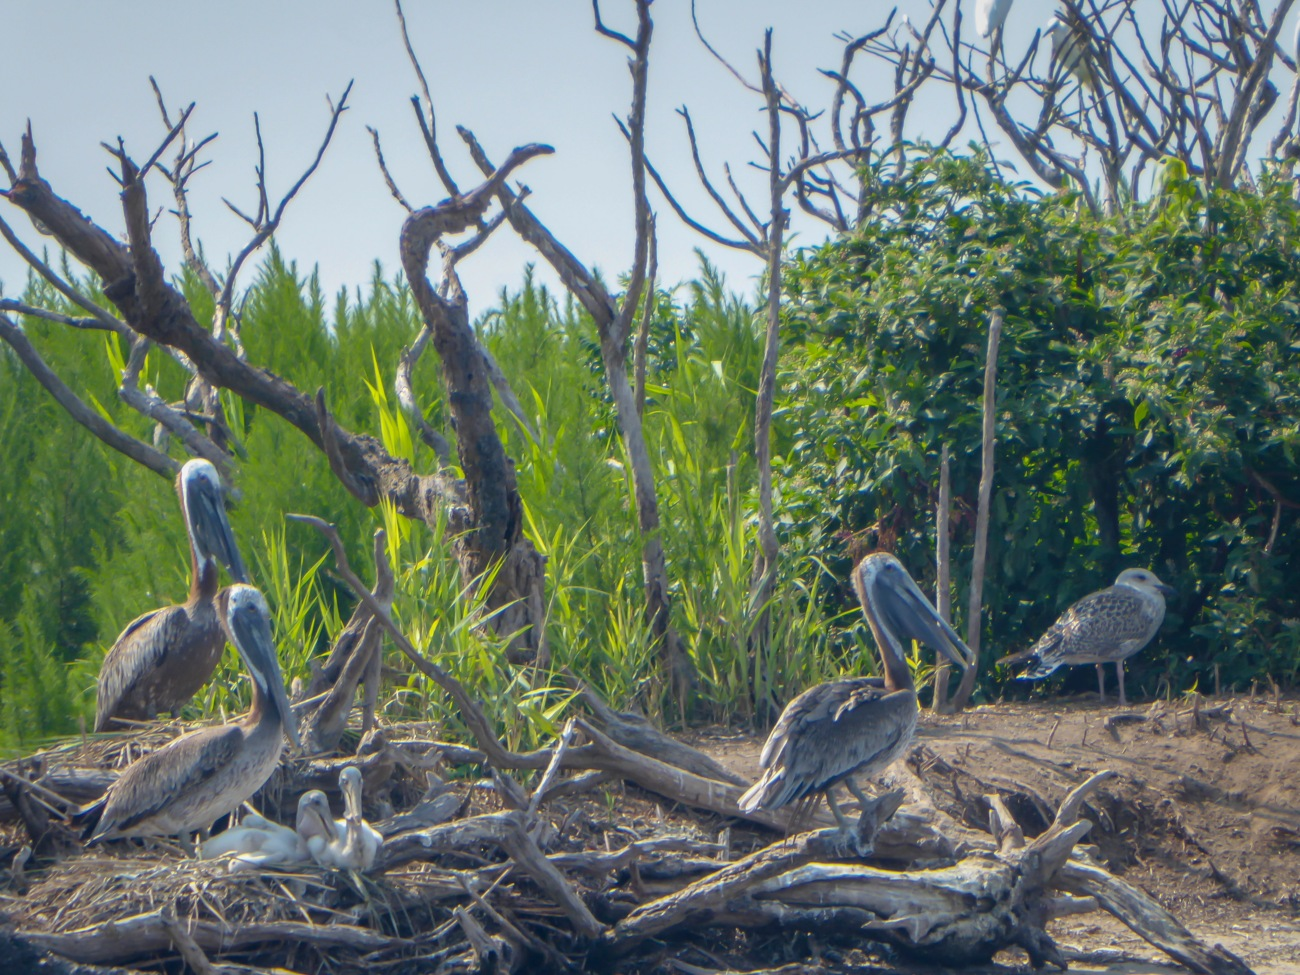 20180727_105828_Pelican babies and parents